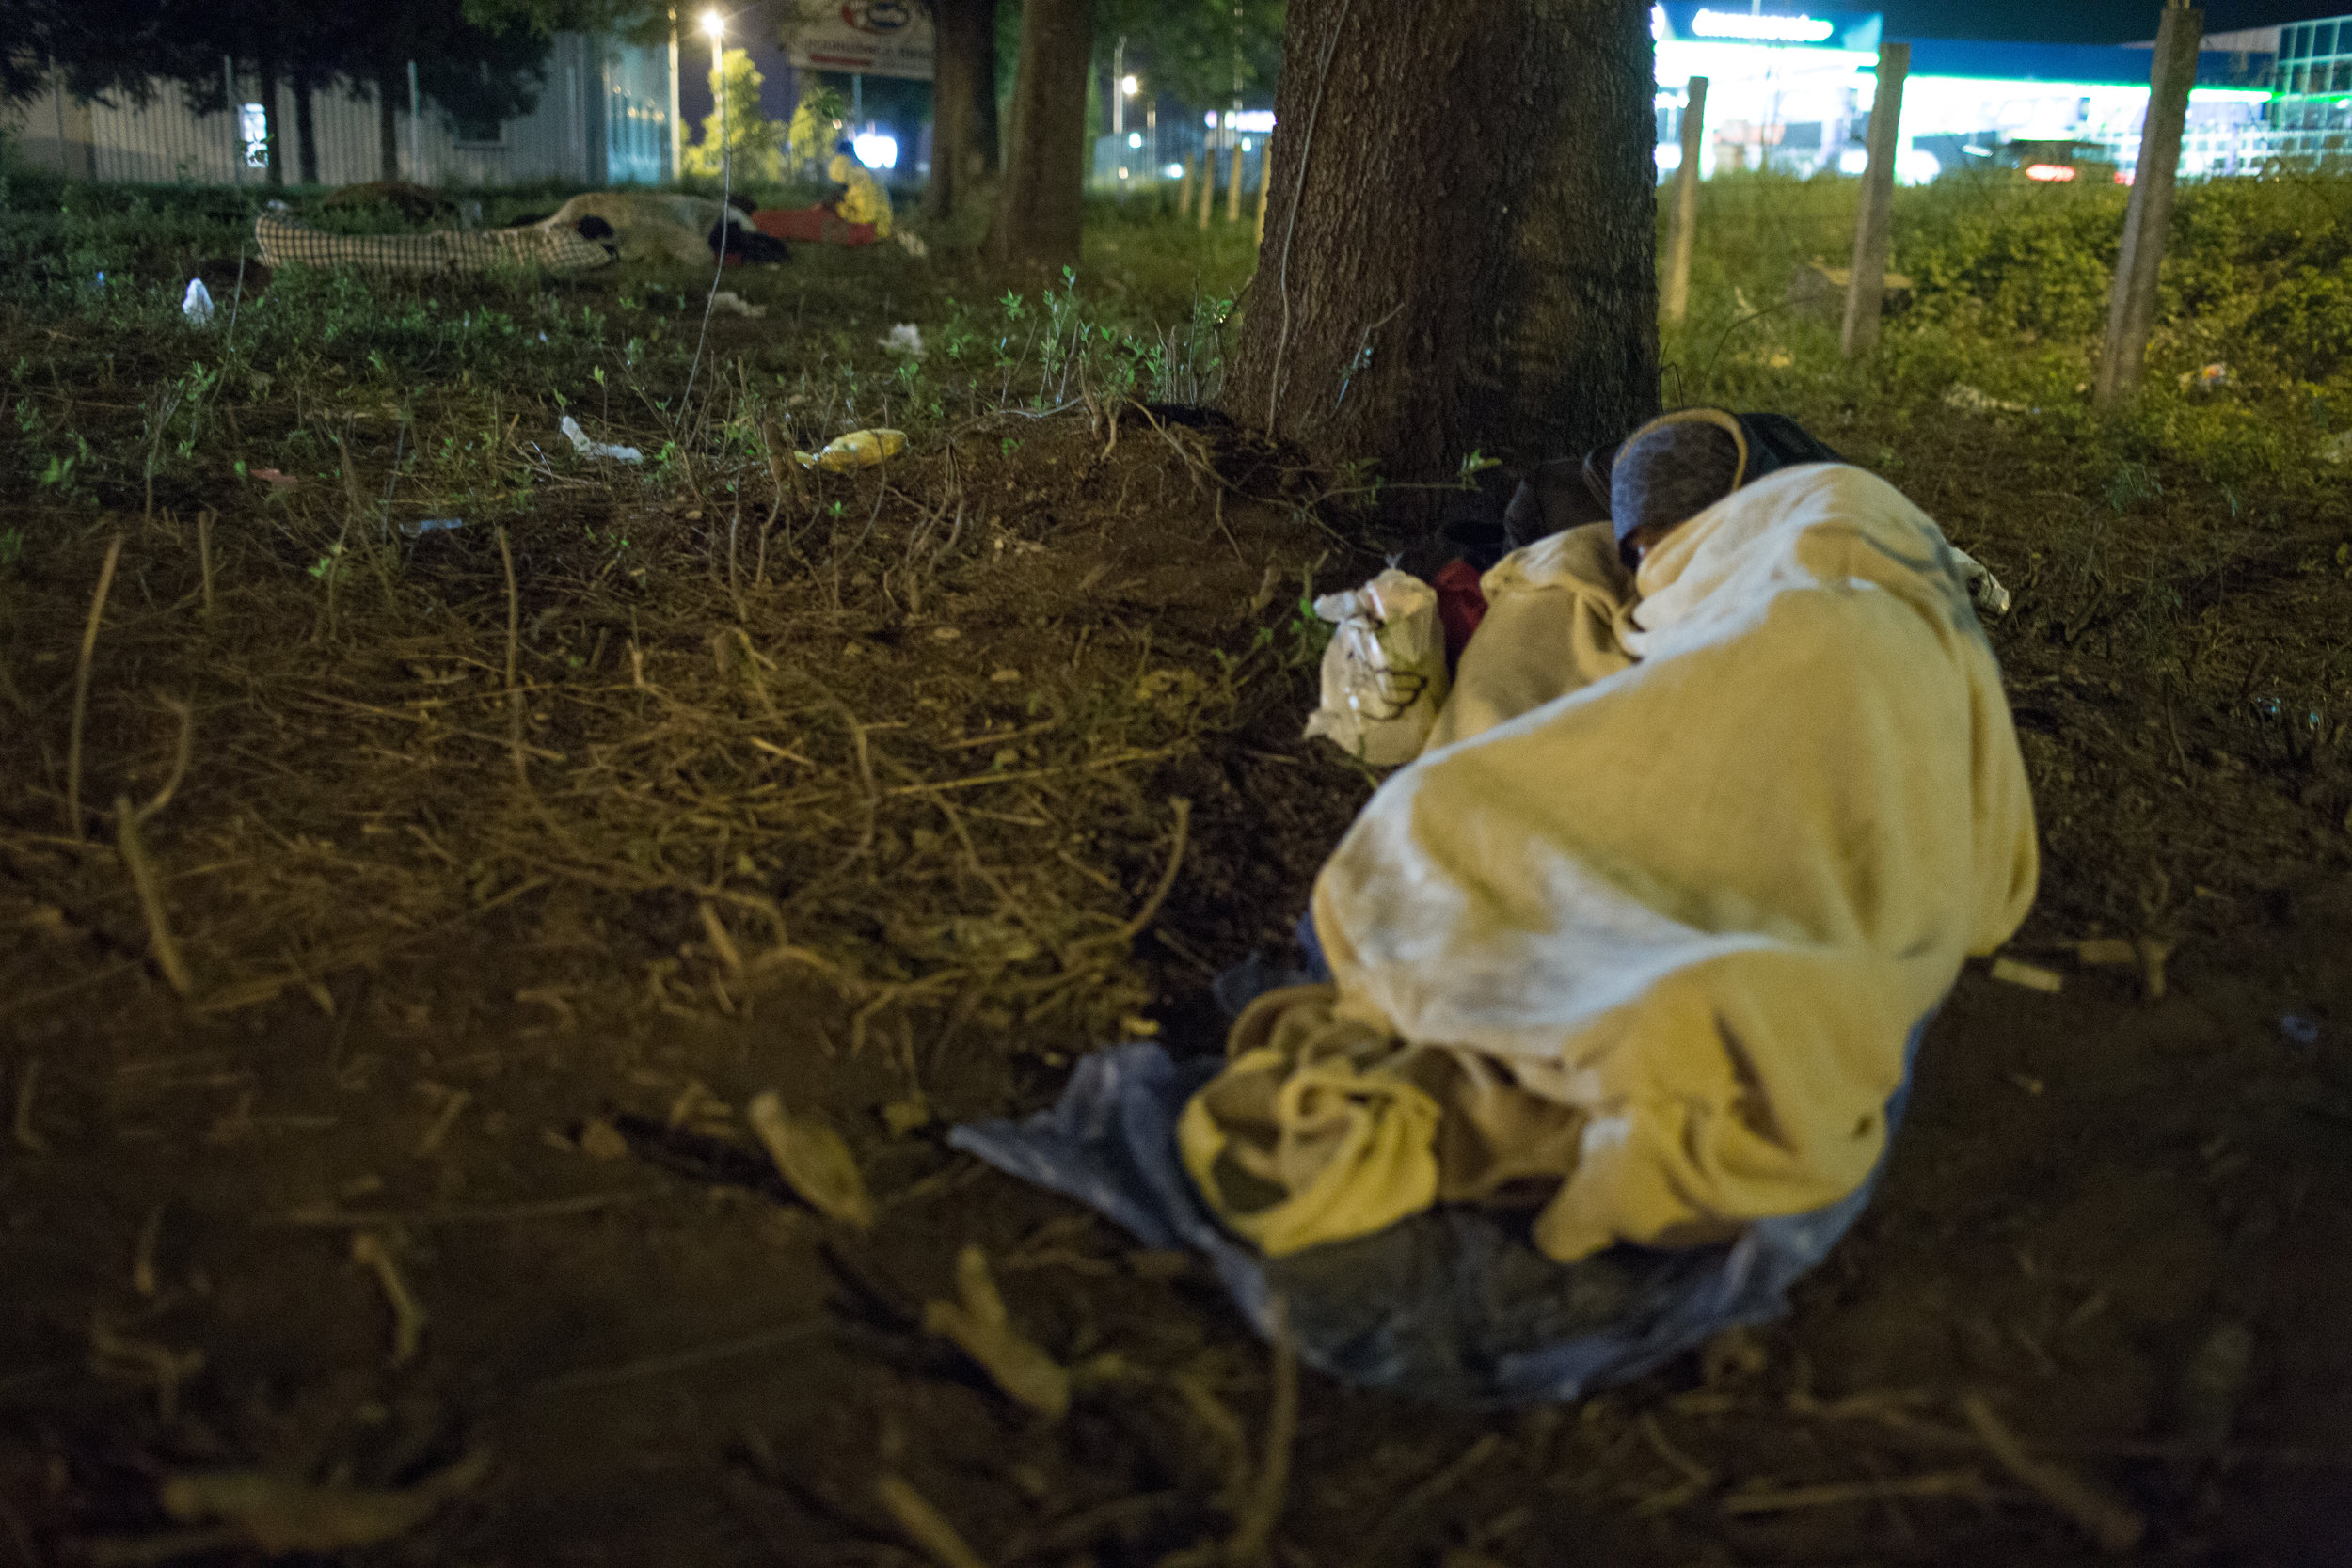 For many migrants, there is no space in the migrant center and they are forced to sleep outdoors, Bihać, BiH.